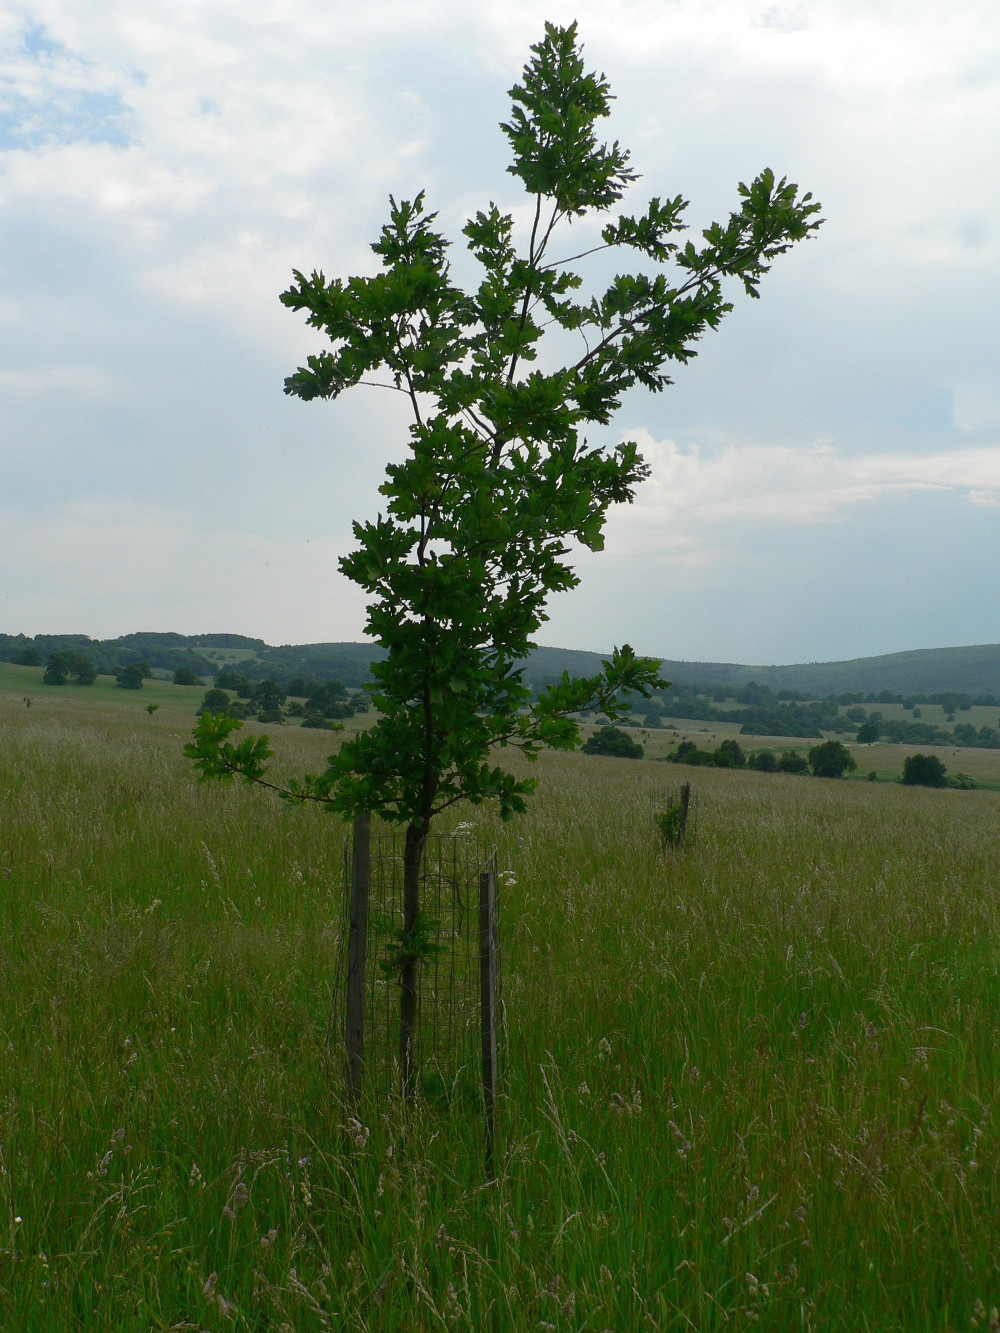 Fig. 9.  Plantings of solitary trees at a regrassed site in the buffer zone of Čertoryje National Nature Reserve. (I. Jongepierová)